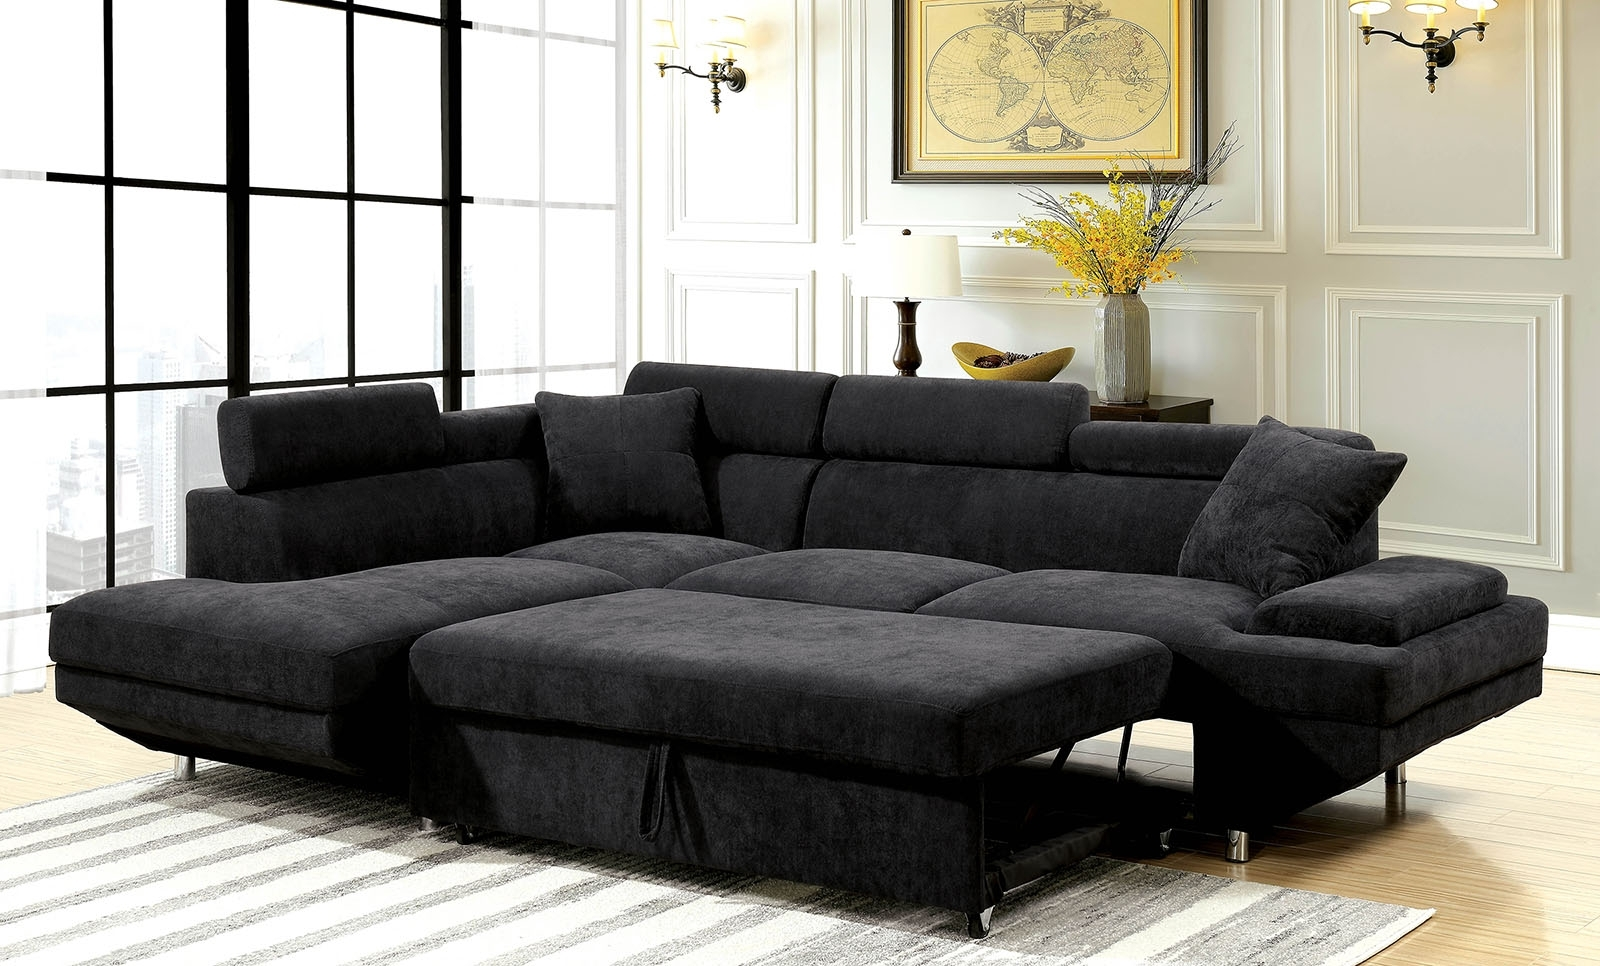 Trendy Adjustable Sectional Sofas With Queen Bed For Foreman Black Flannelette Fabric Sectional With Pull Out Bed (View 18 of 20)